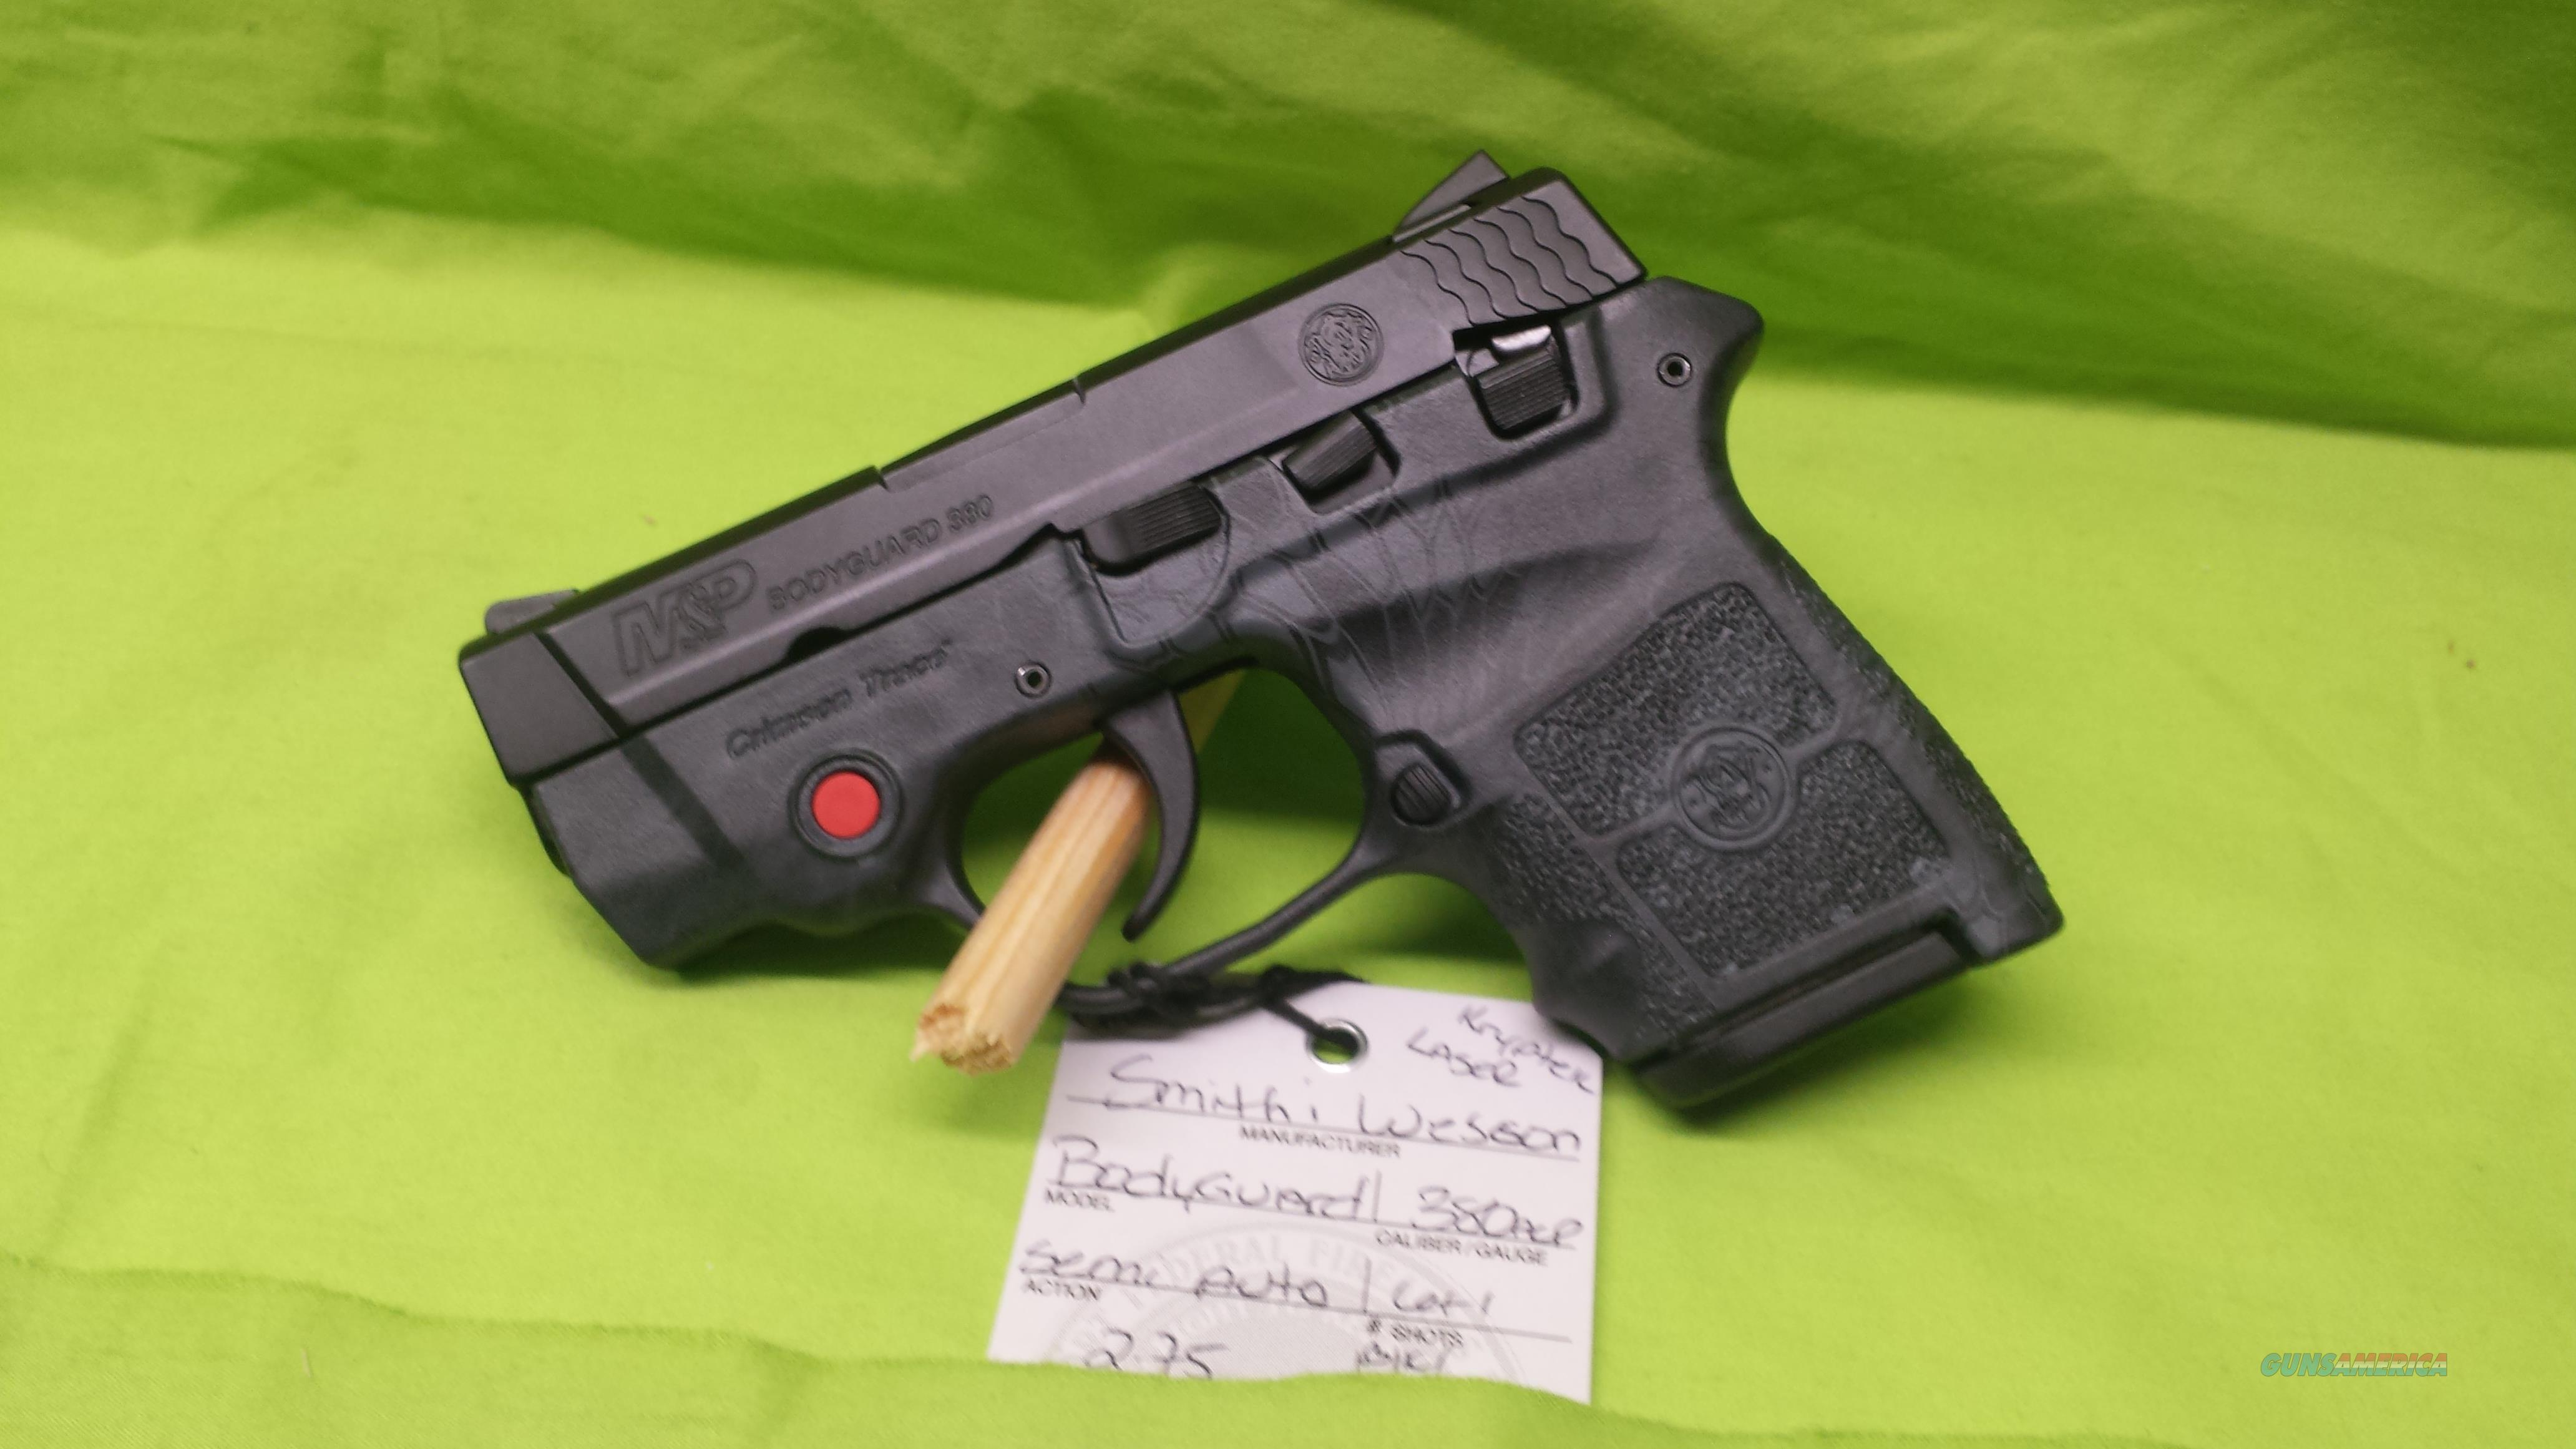 S&W M&P BODYGUARD 380ACP 380 KRYPTEK CRIMSON TRACE LASER NEW RELEASED  Guns > Pistols > Smith & Wesson Pistols - Autos > Polymer Frame